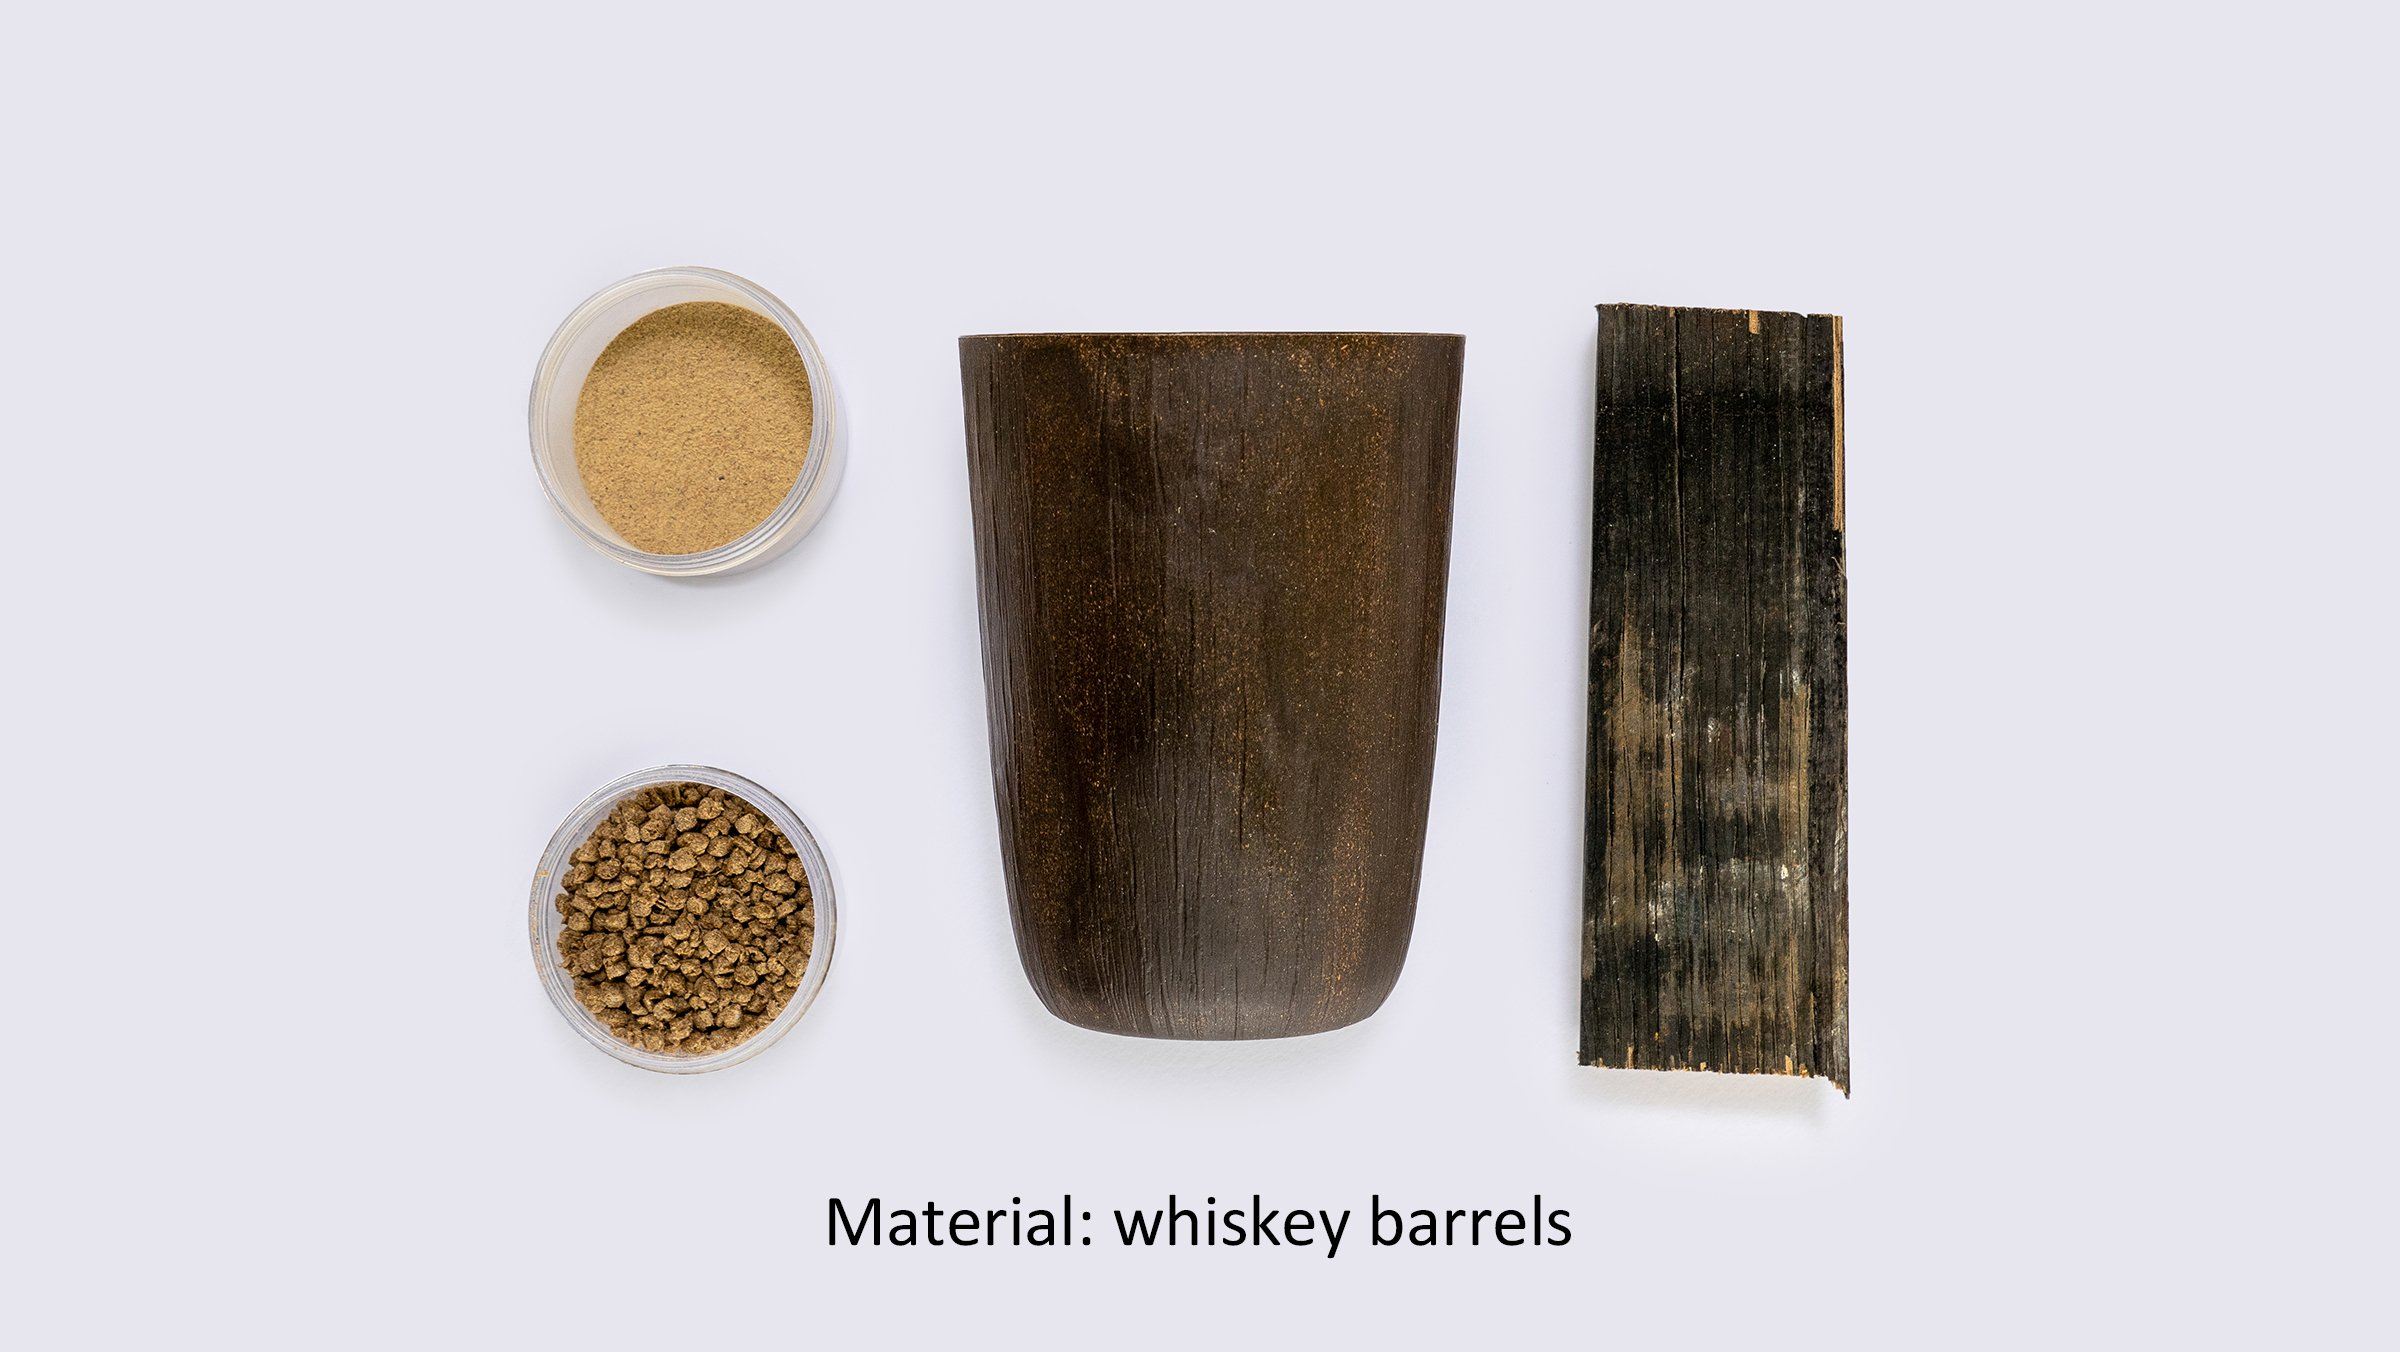 Photo: Reusable cups using cellulose fiber (material: whiskey barrels).